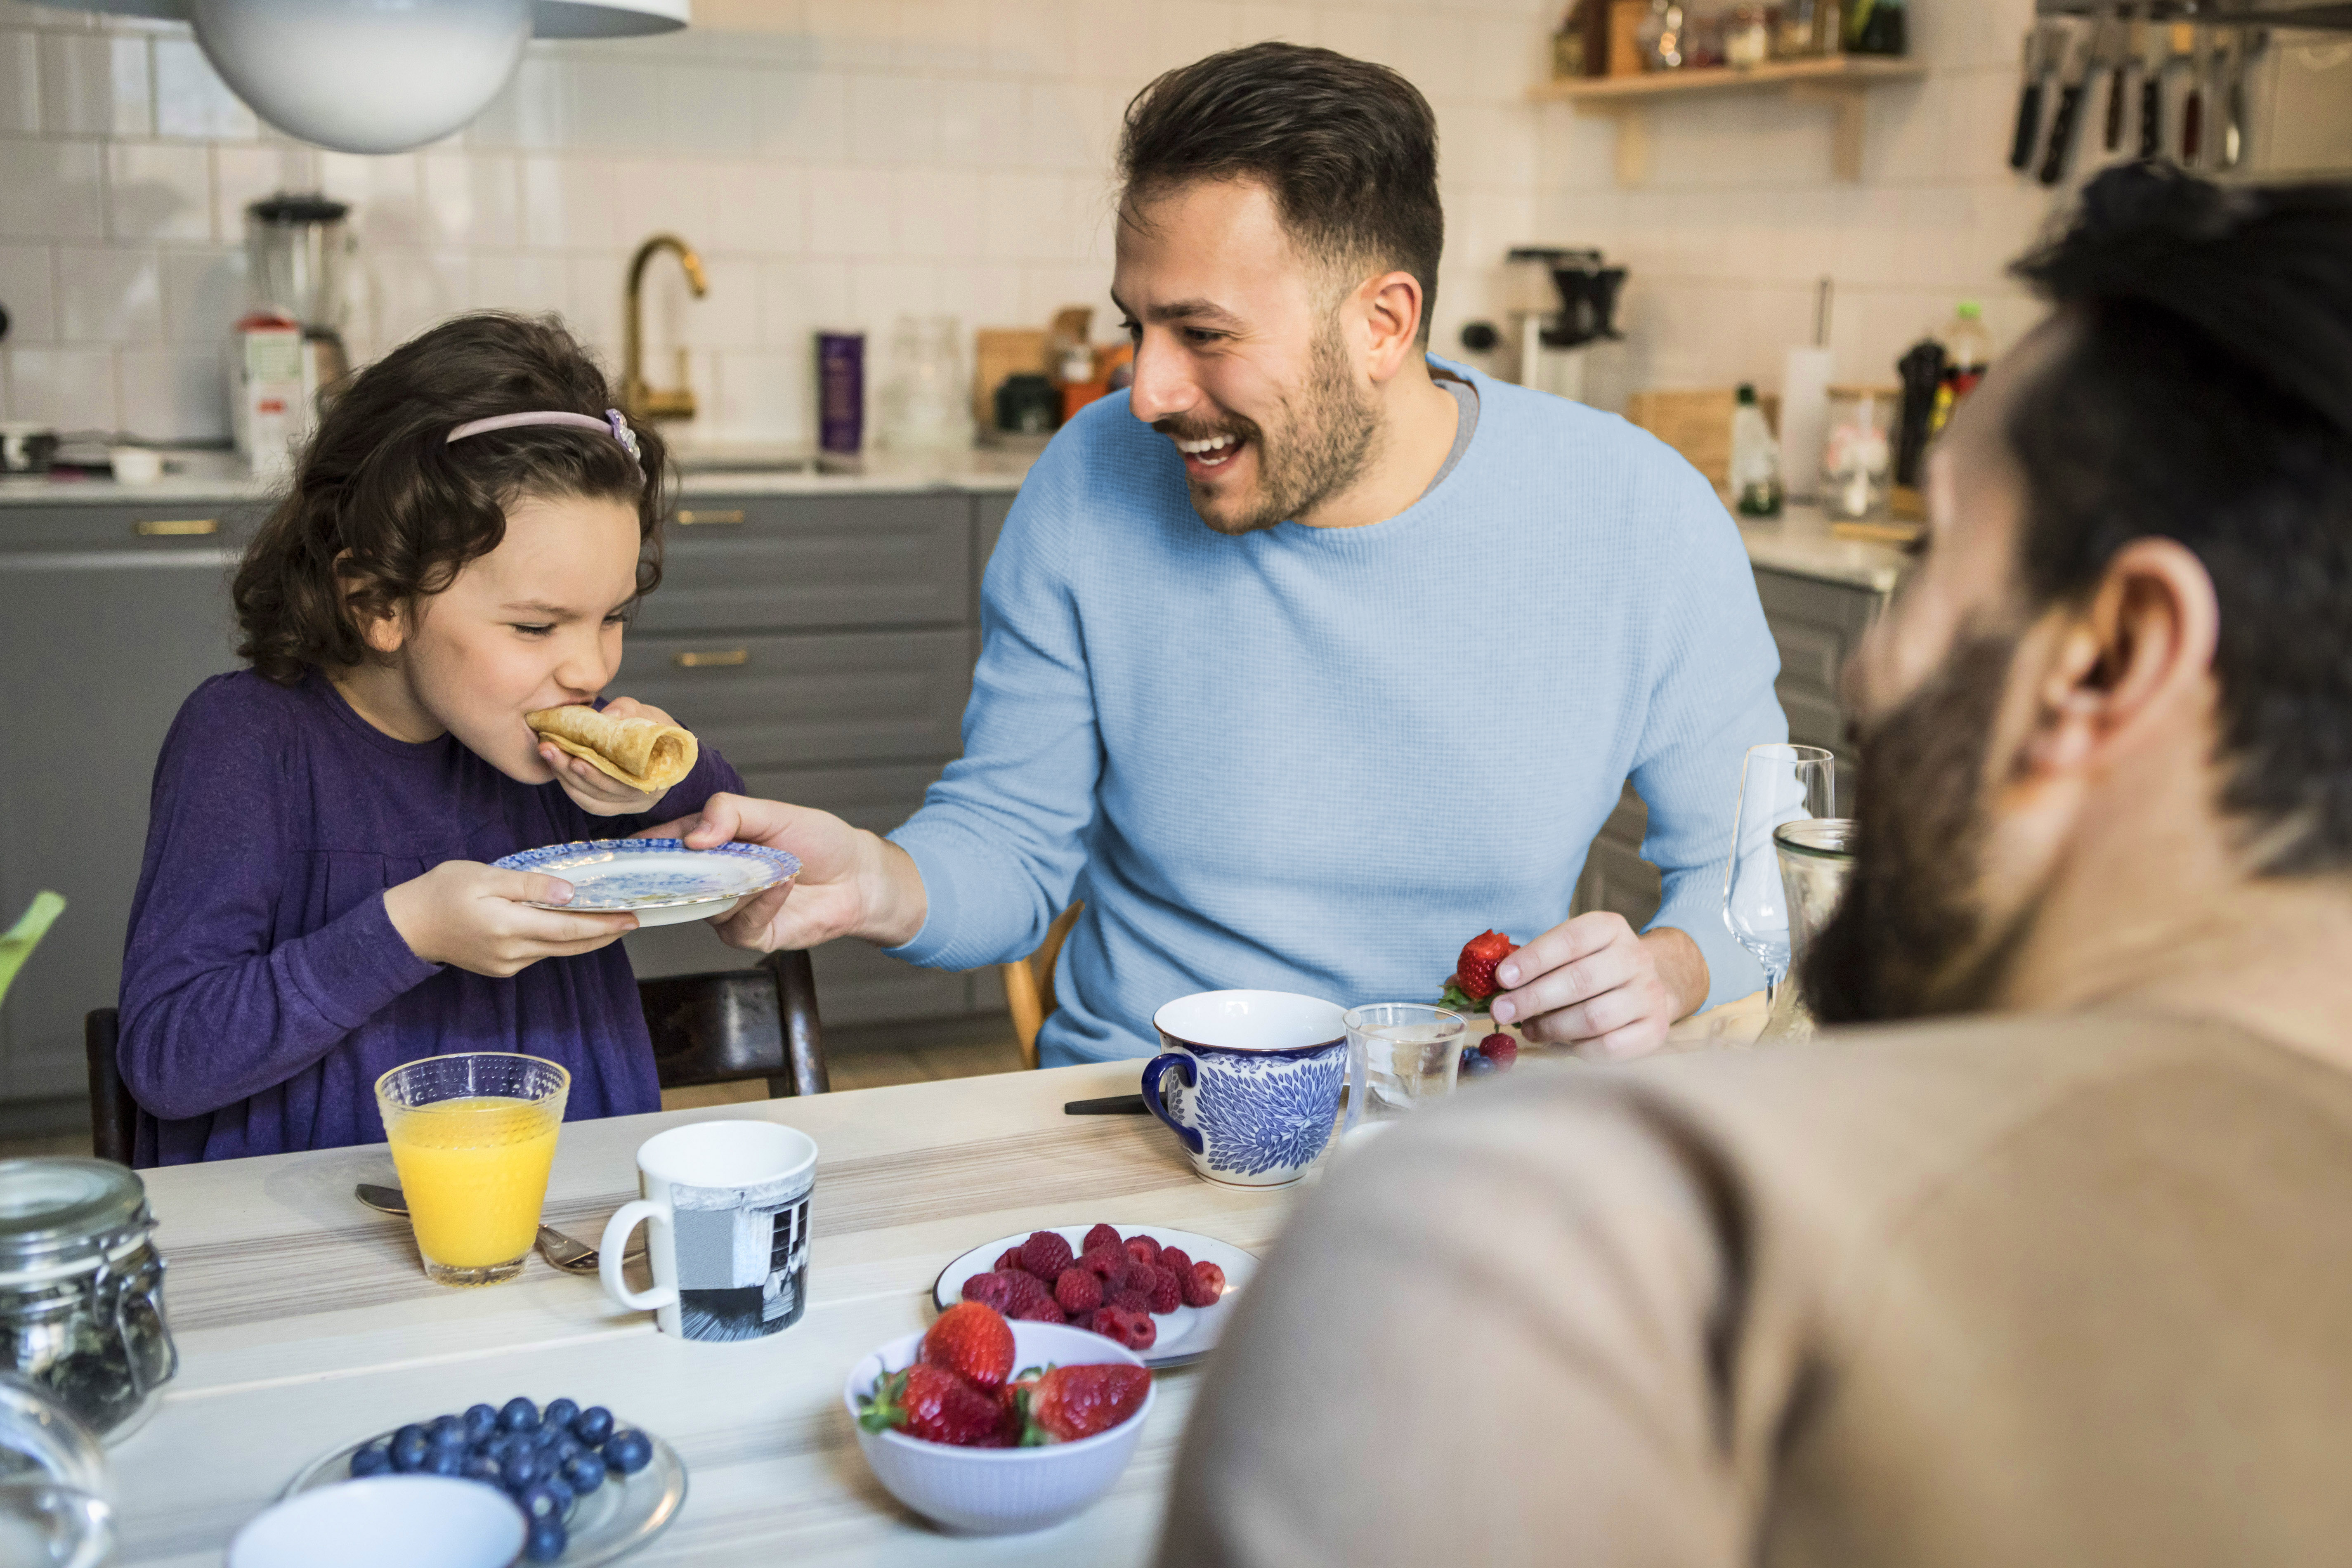 Laughing father holding plate while daughter eats pancake at table. (Maskot/Getty Images)